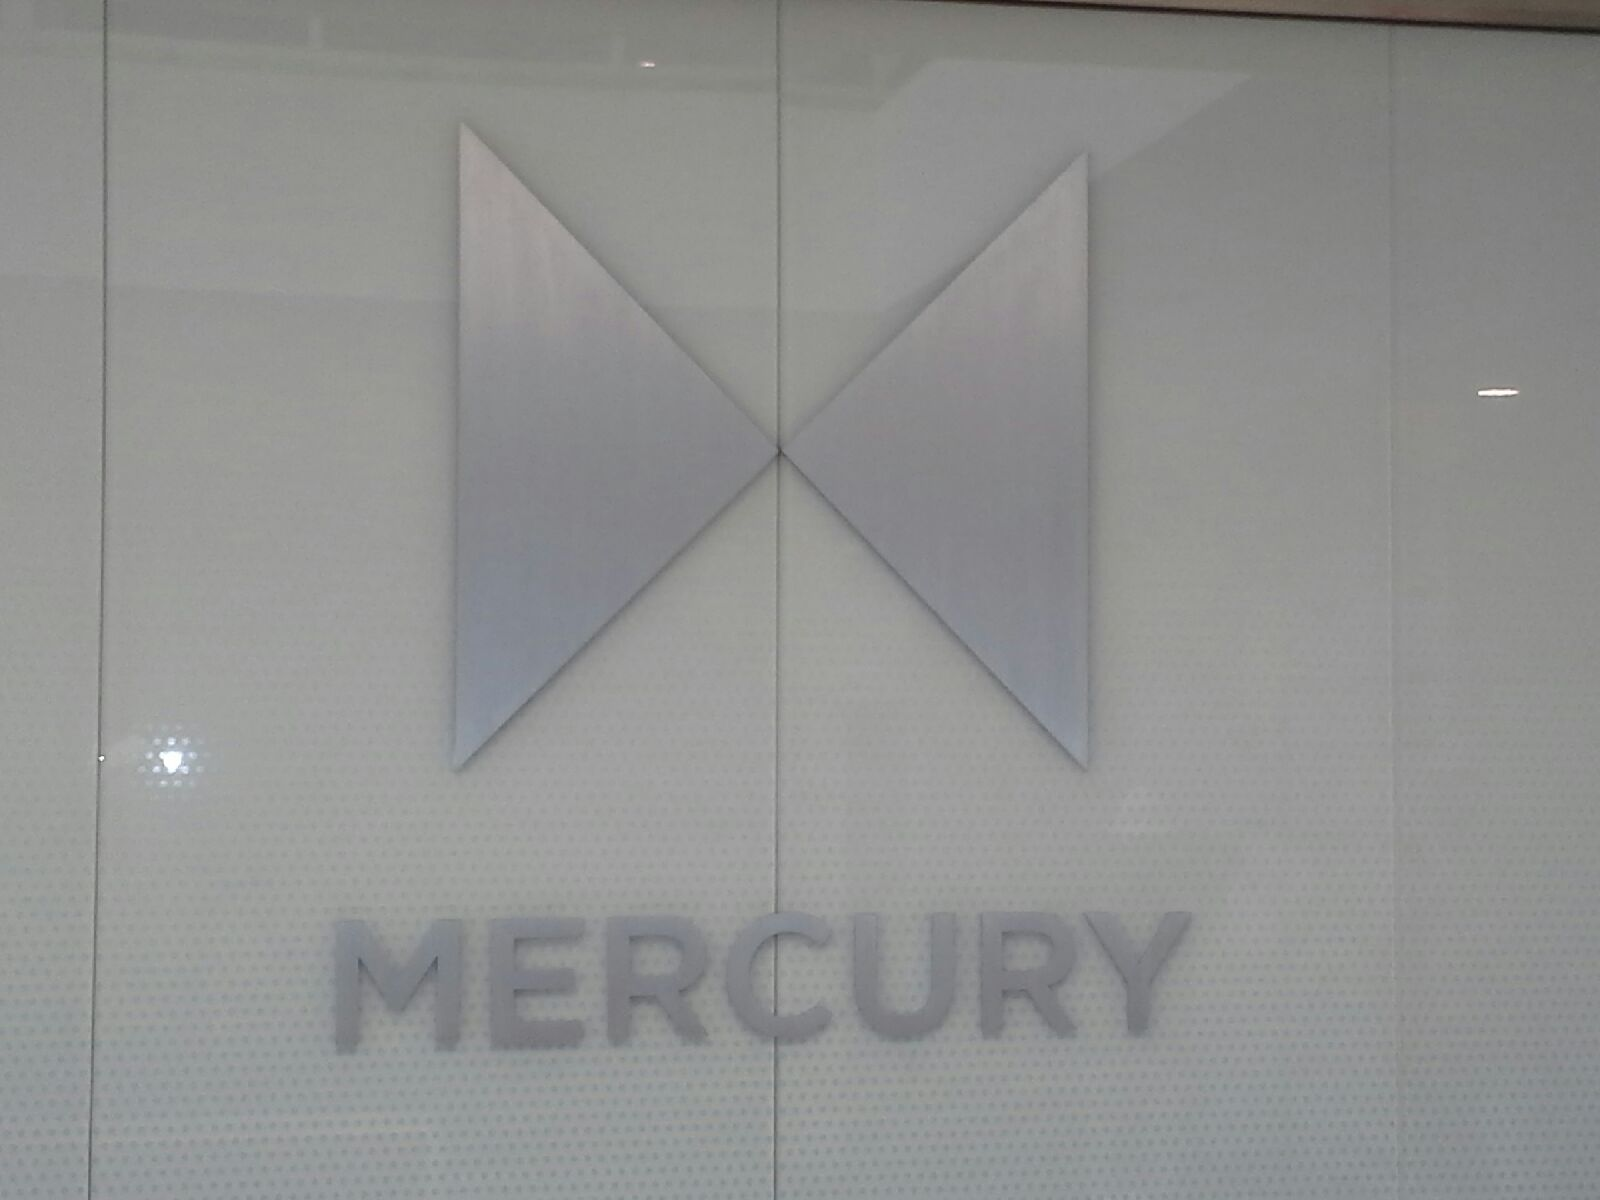 mercury payment systems lobby sign